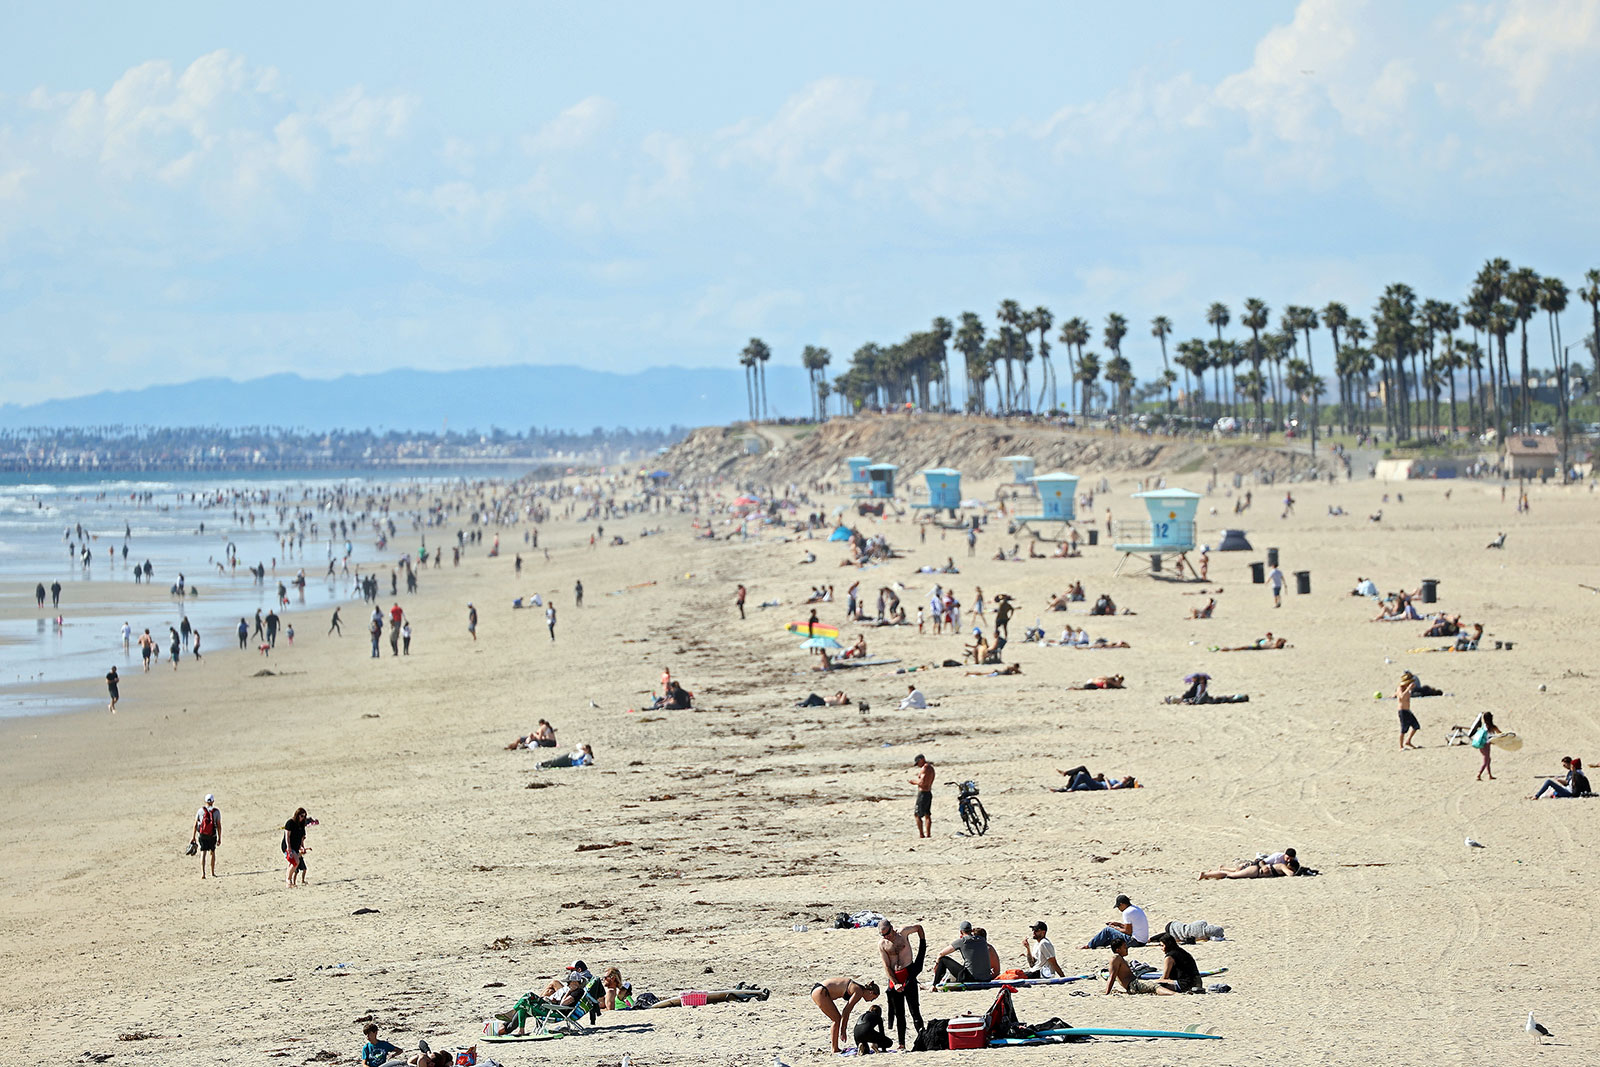 People visit the beach in Huntington Beach, California, on March 21.